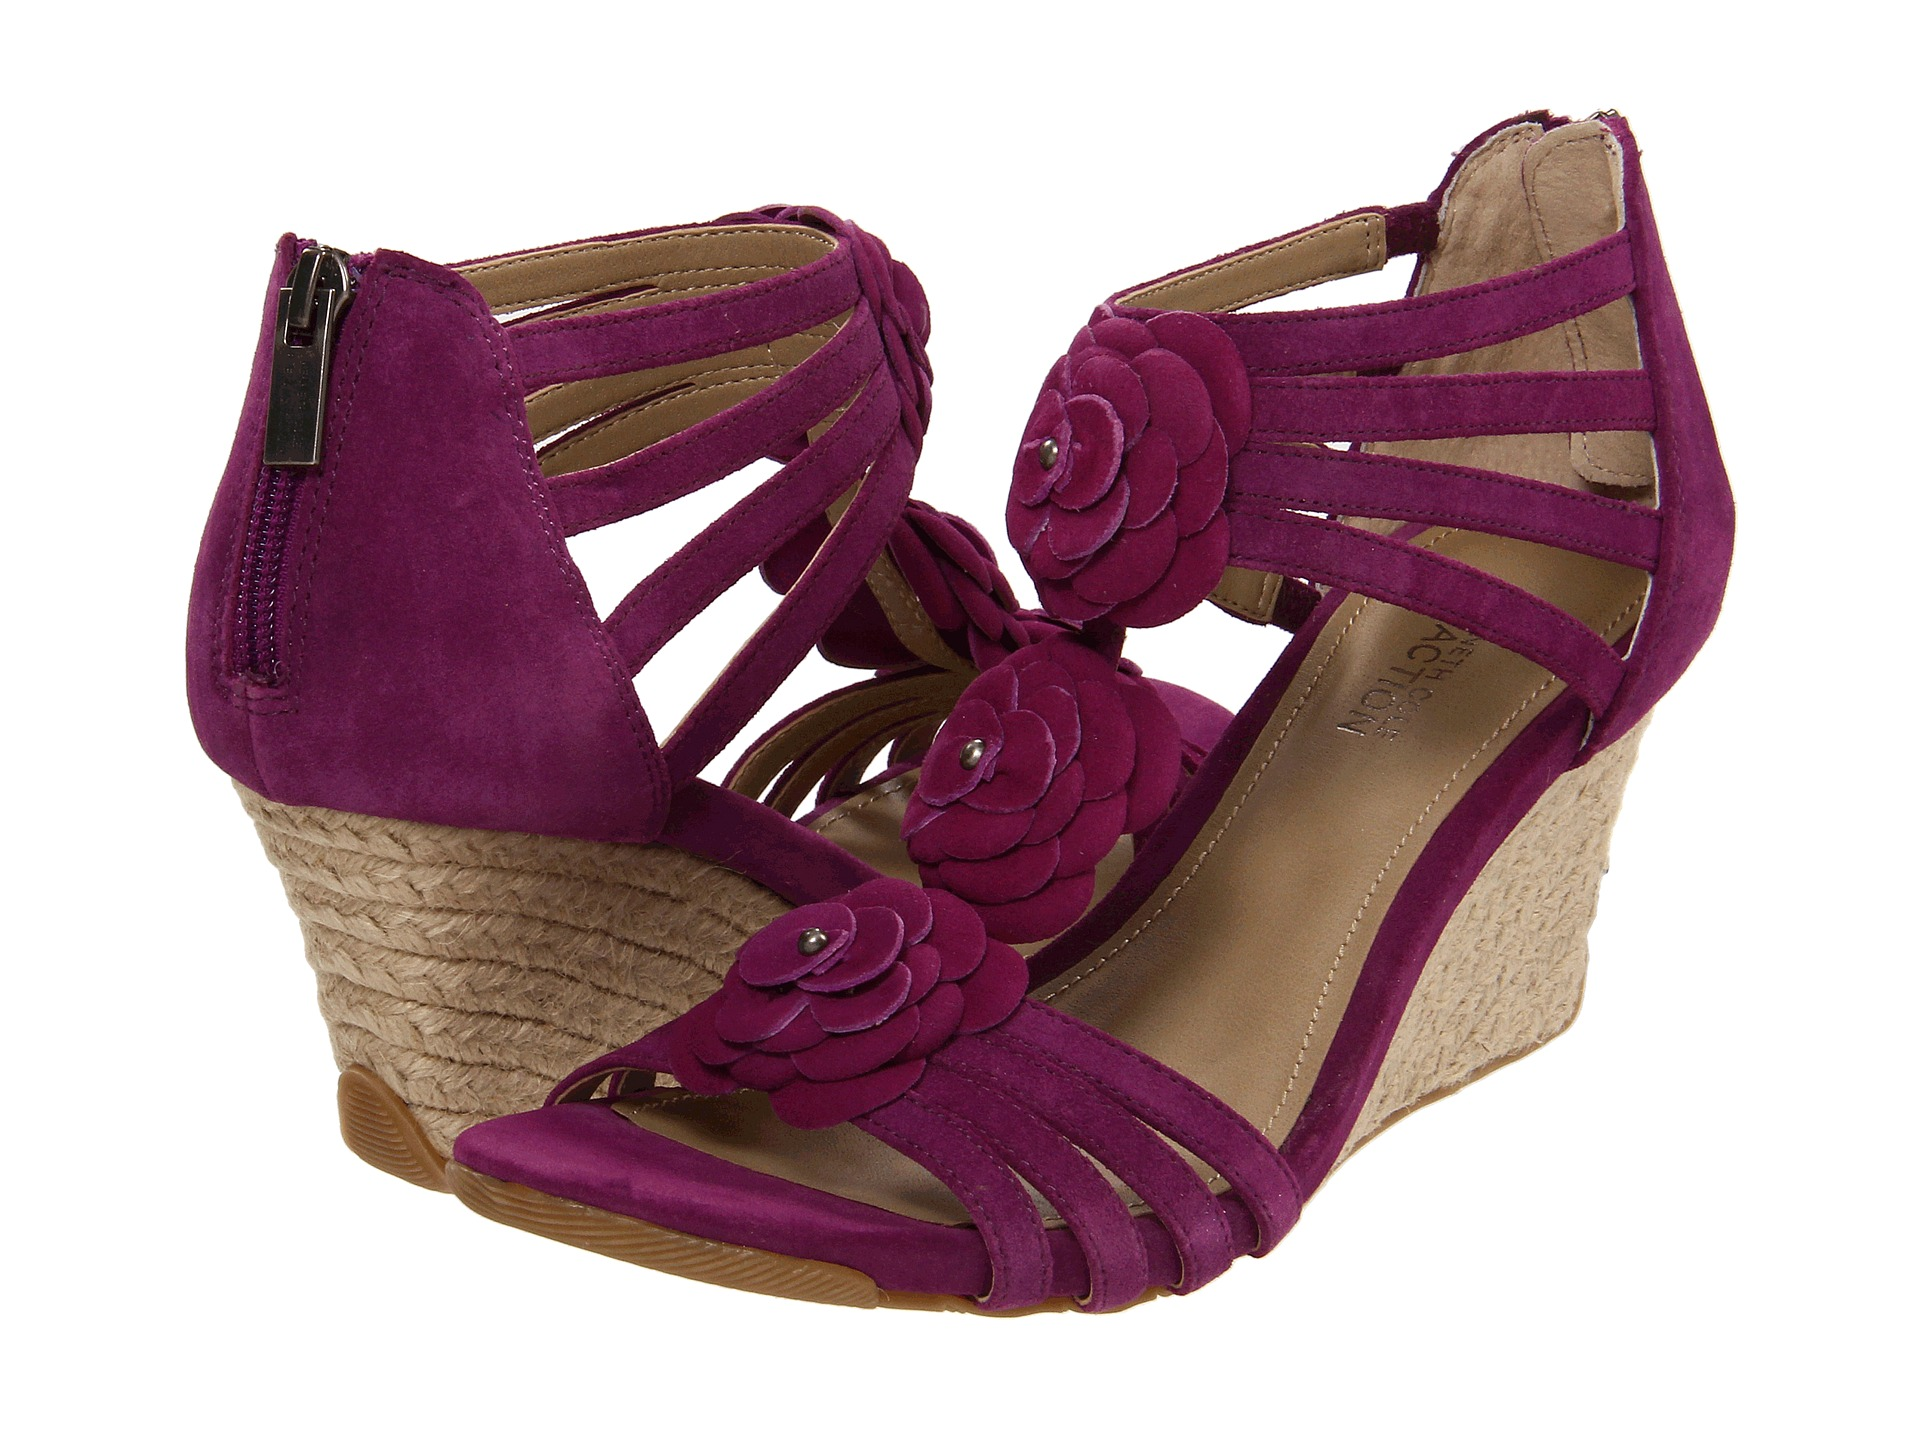 Kenneth Cole Reaction, Sandals, Wedges, Women at